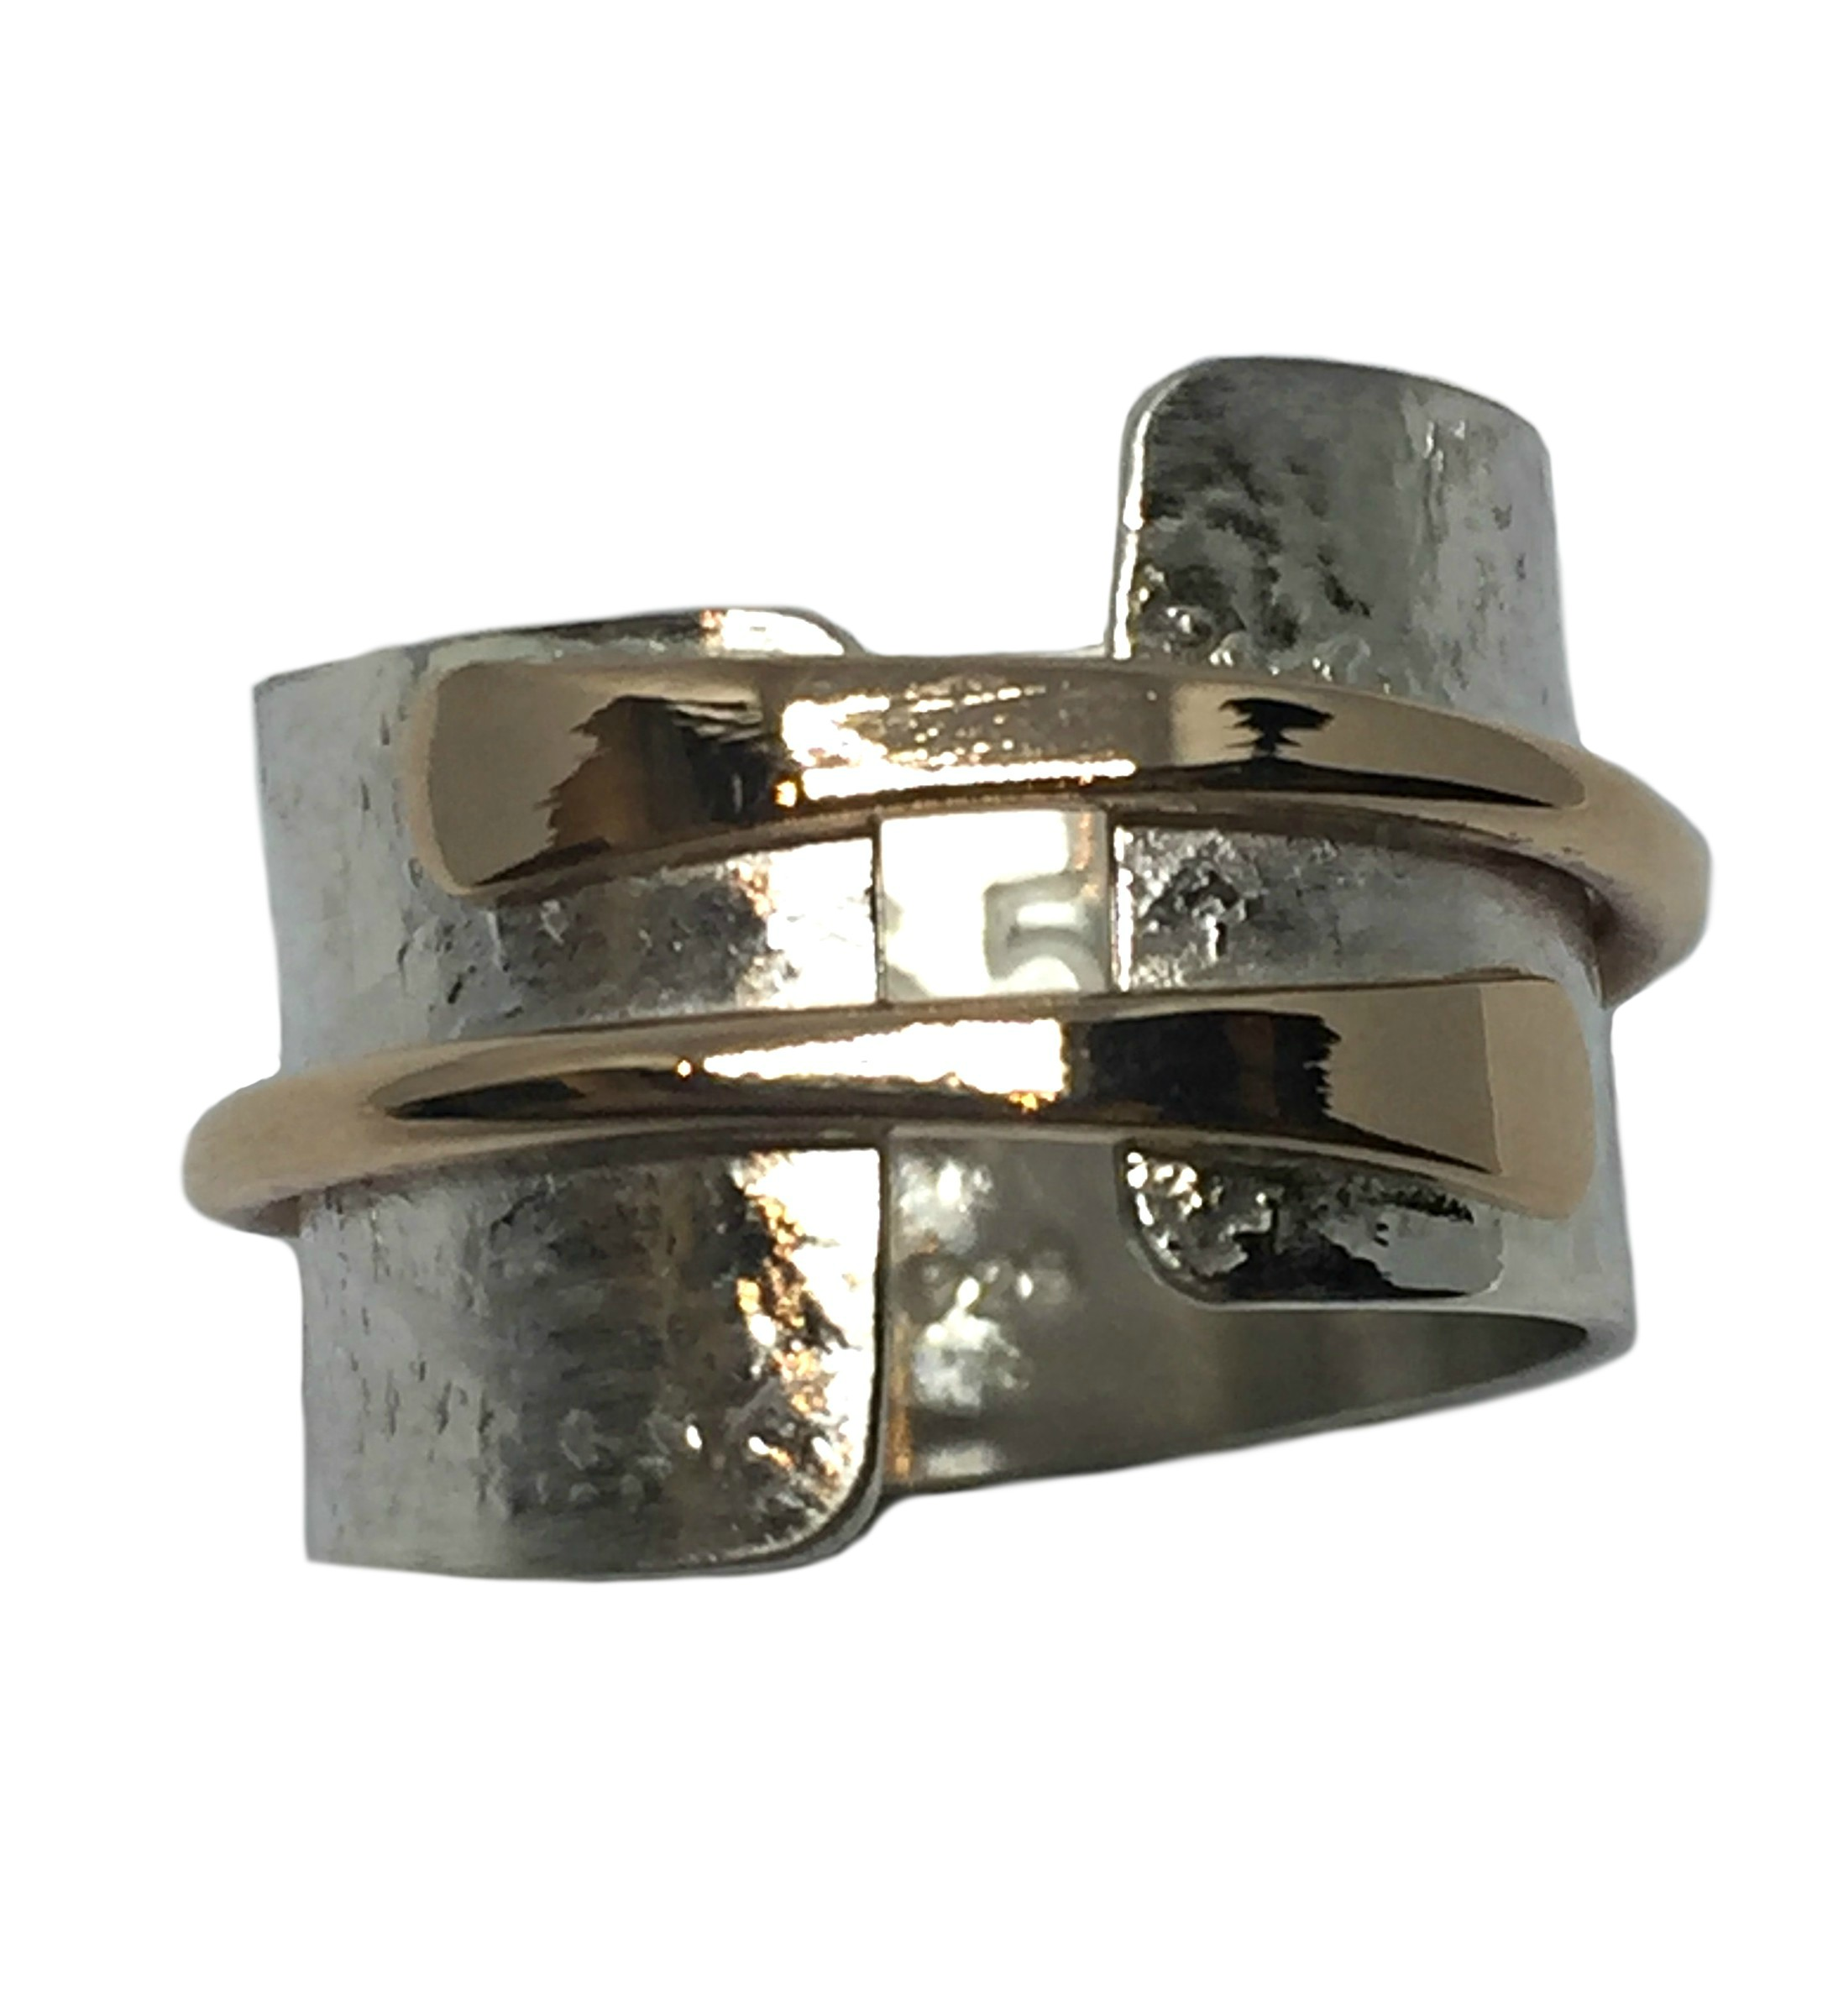 Silver and Bronze Karyn Chopik Ring | Effusion Art Gallery + Cast Glass Studio, Invermere BC